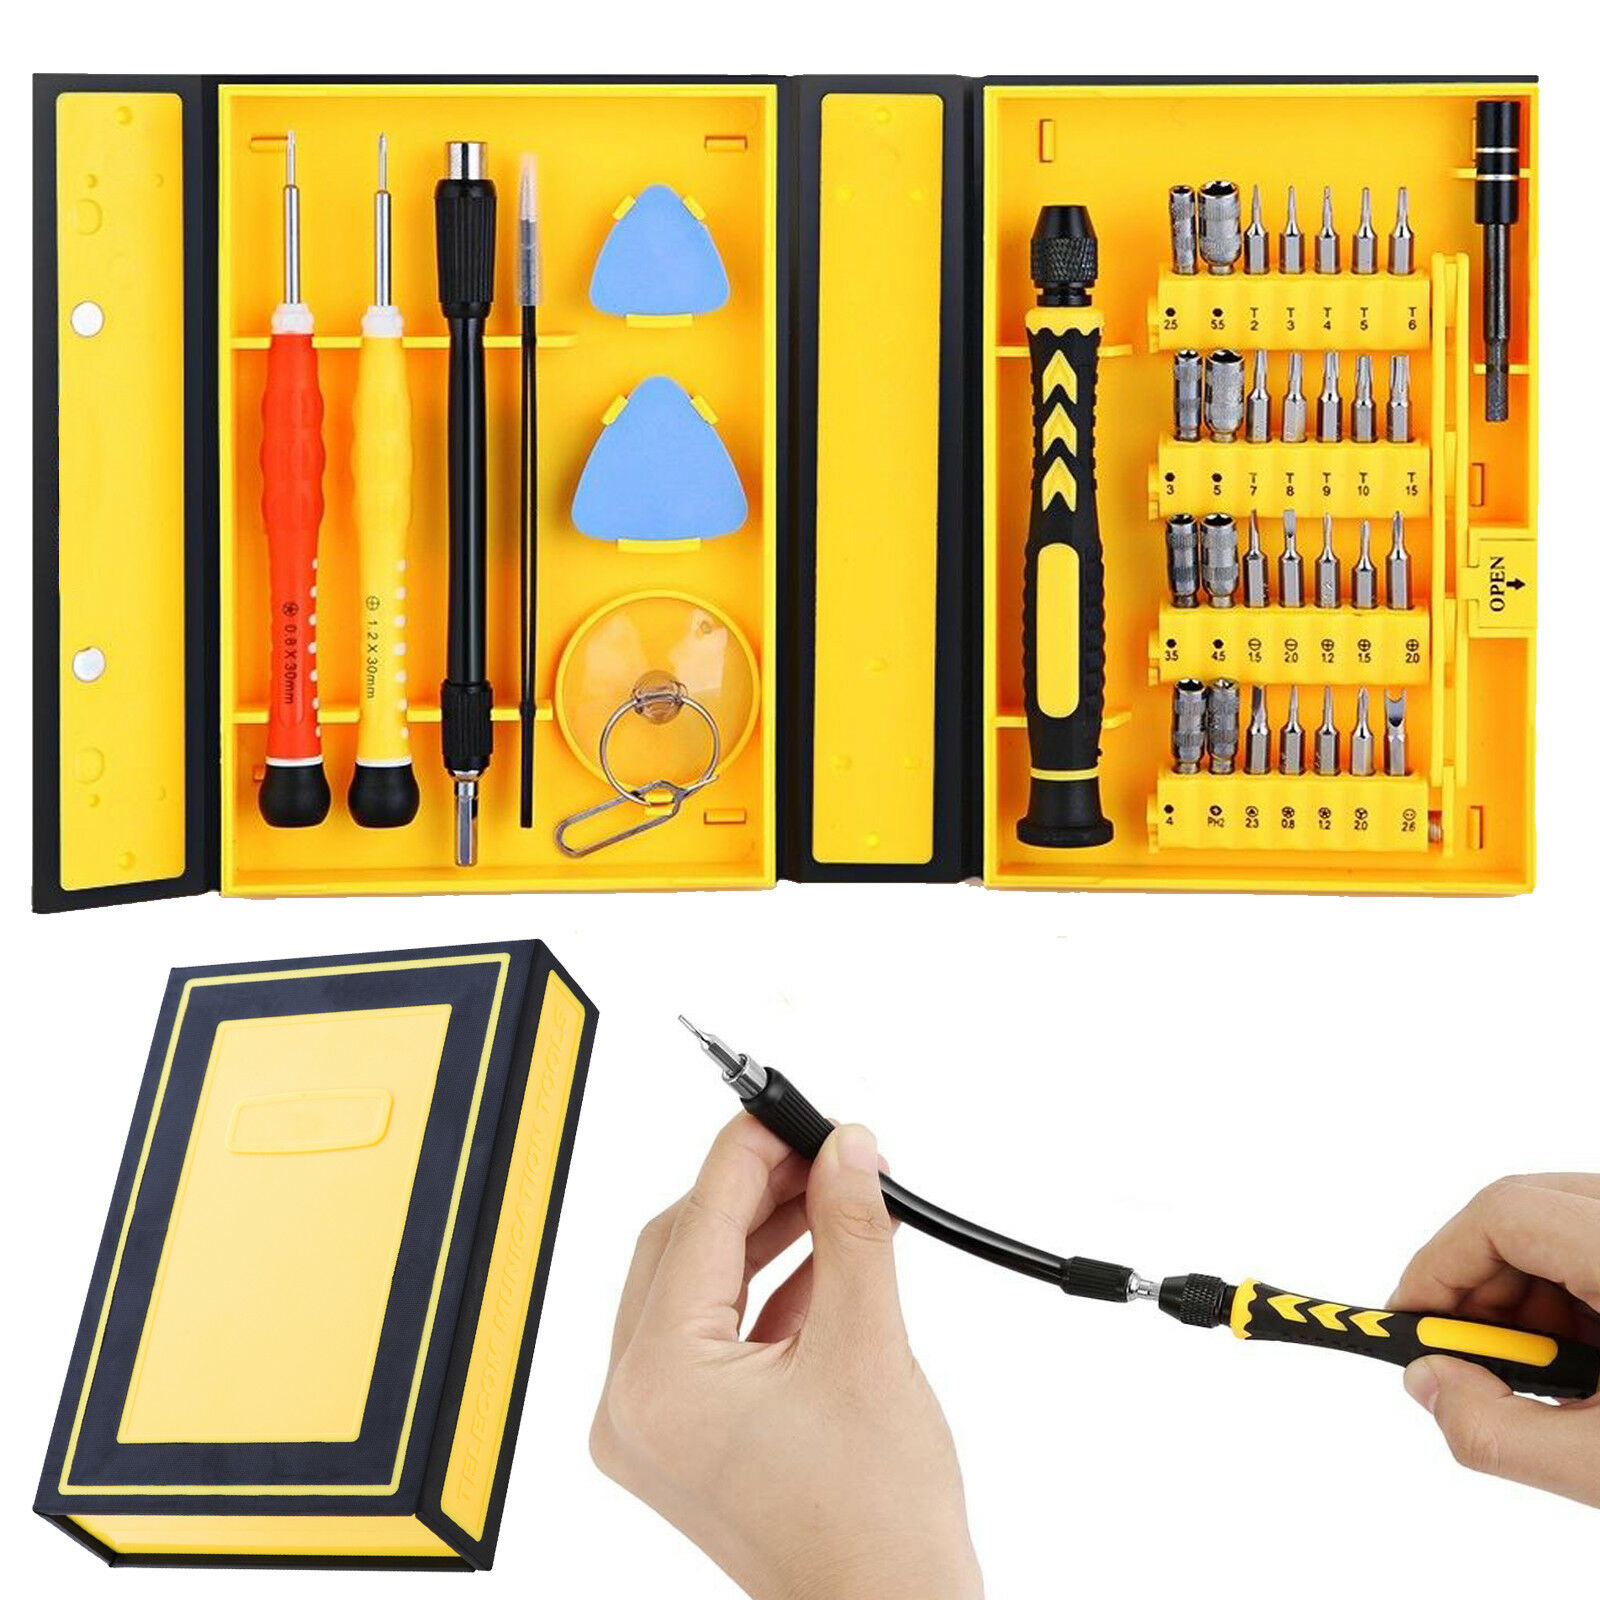 38 in 1 Mobile Phone Screen Opening Repair Tools Kit Screwdriver Set for iPhone Cell Phone & Smartphone Parts